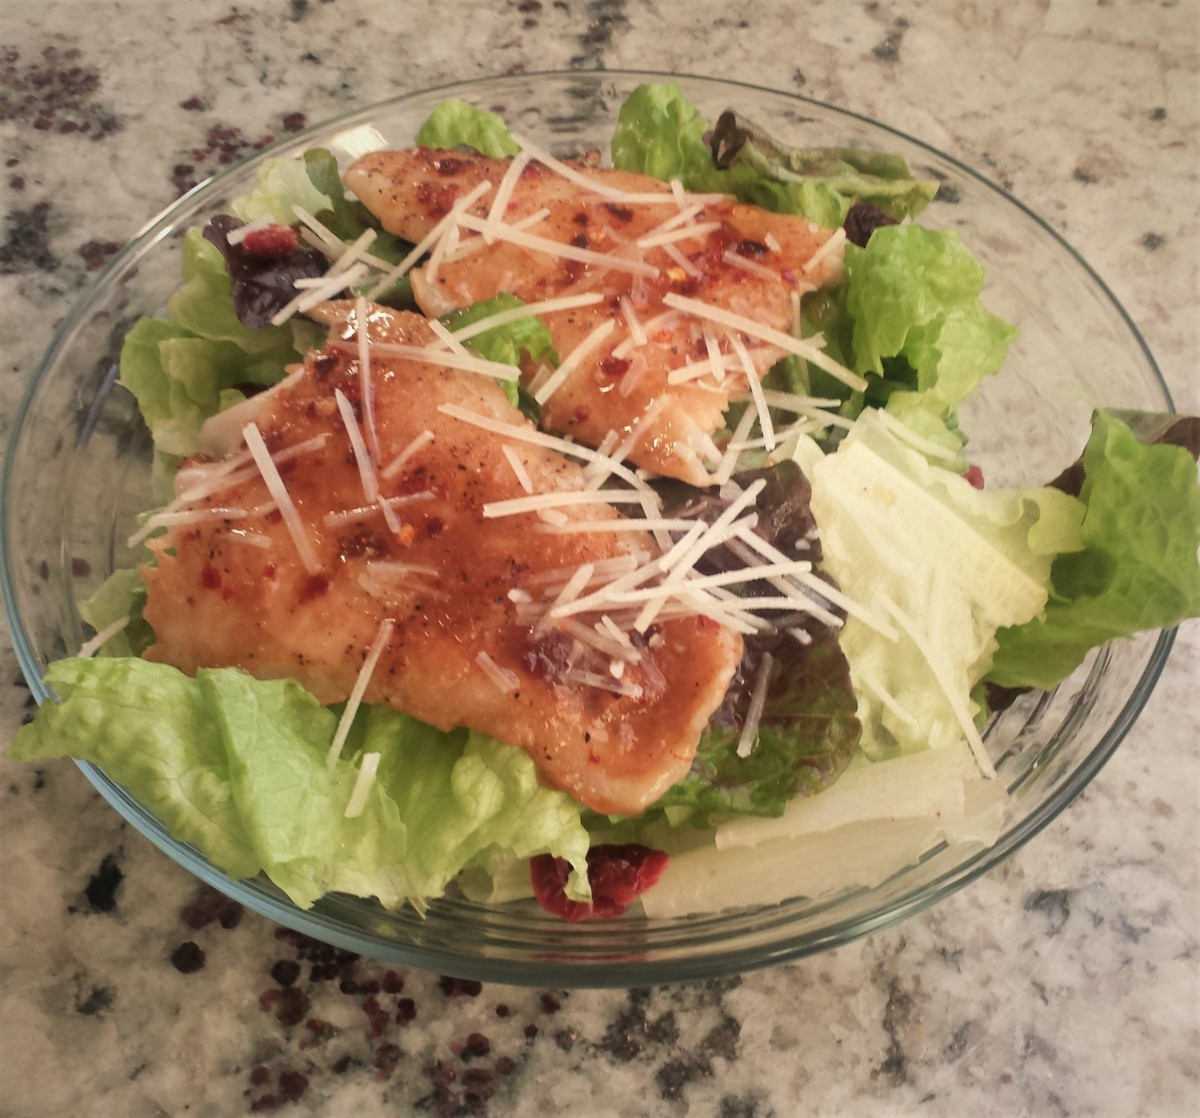 Easy swai fish salad eatersrendezvous for Is it safe to eat swai fish